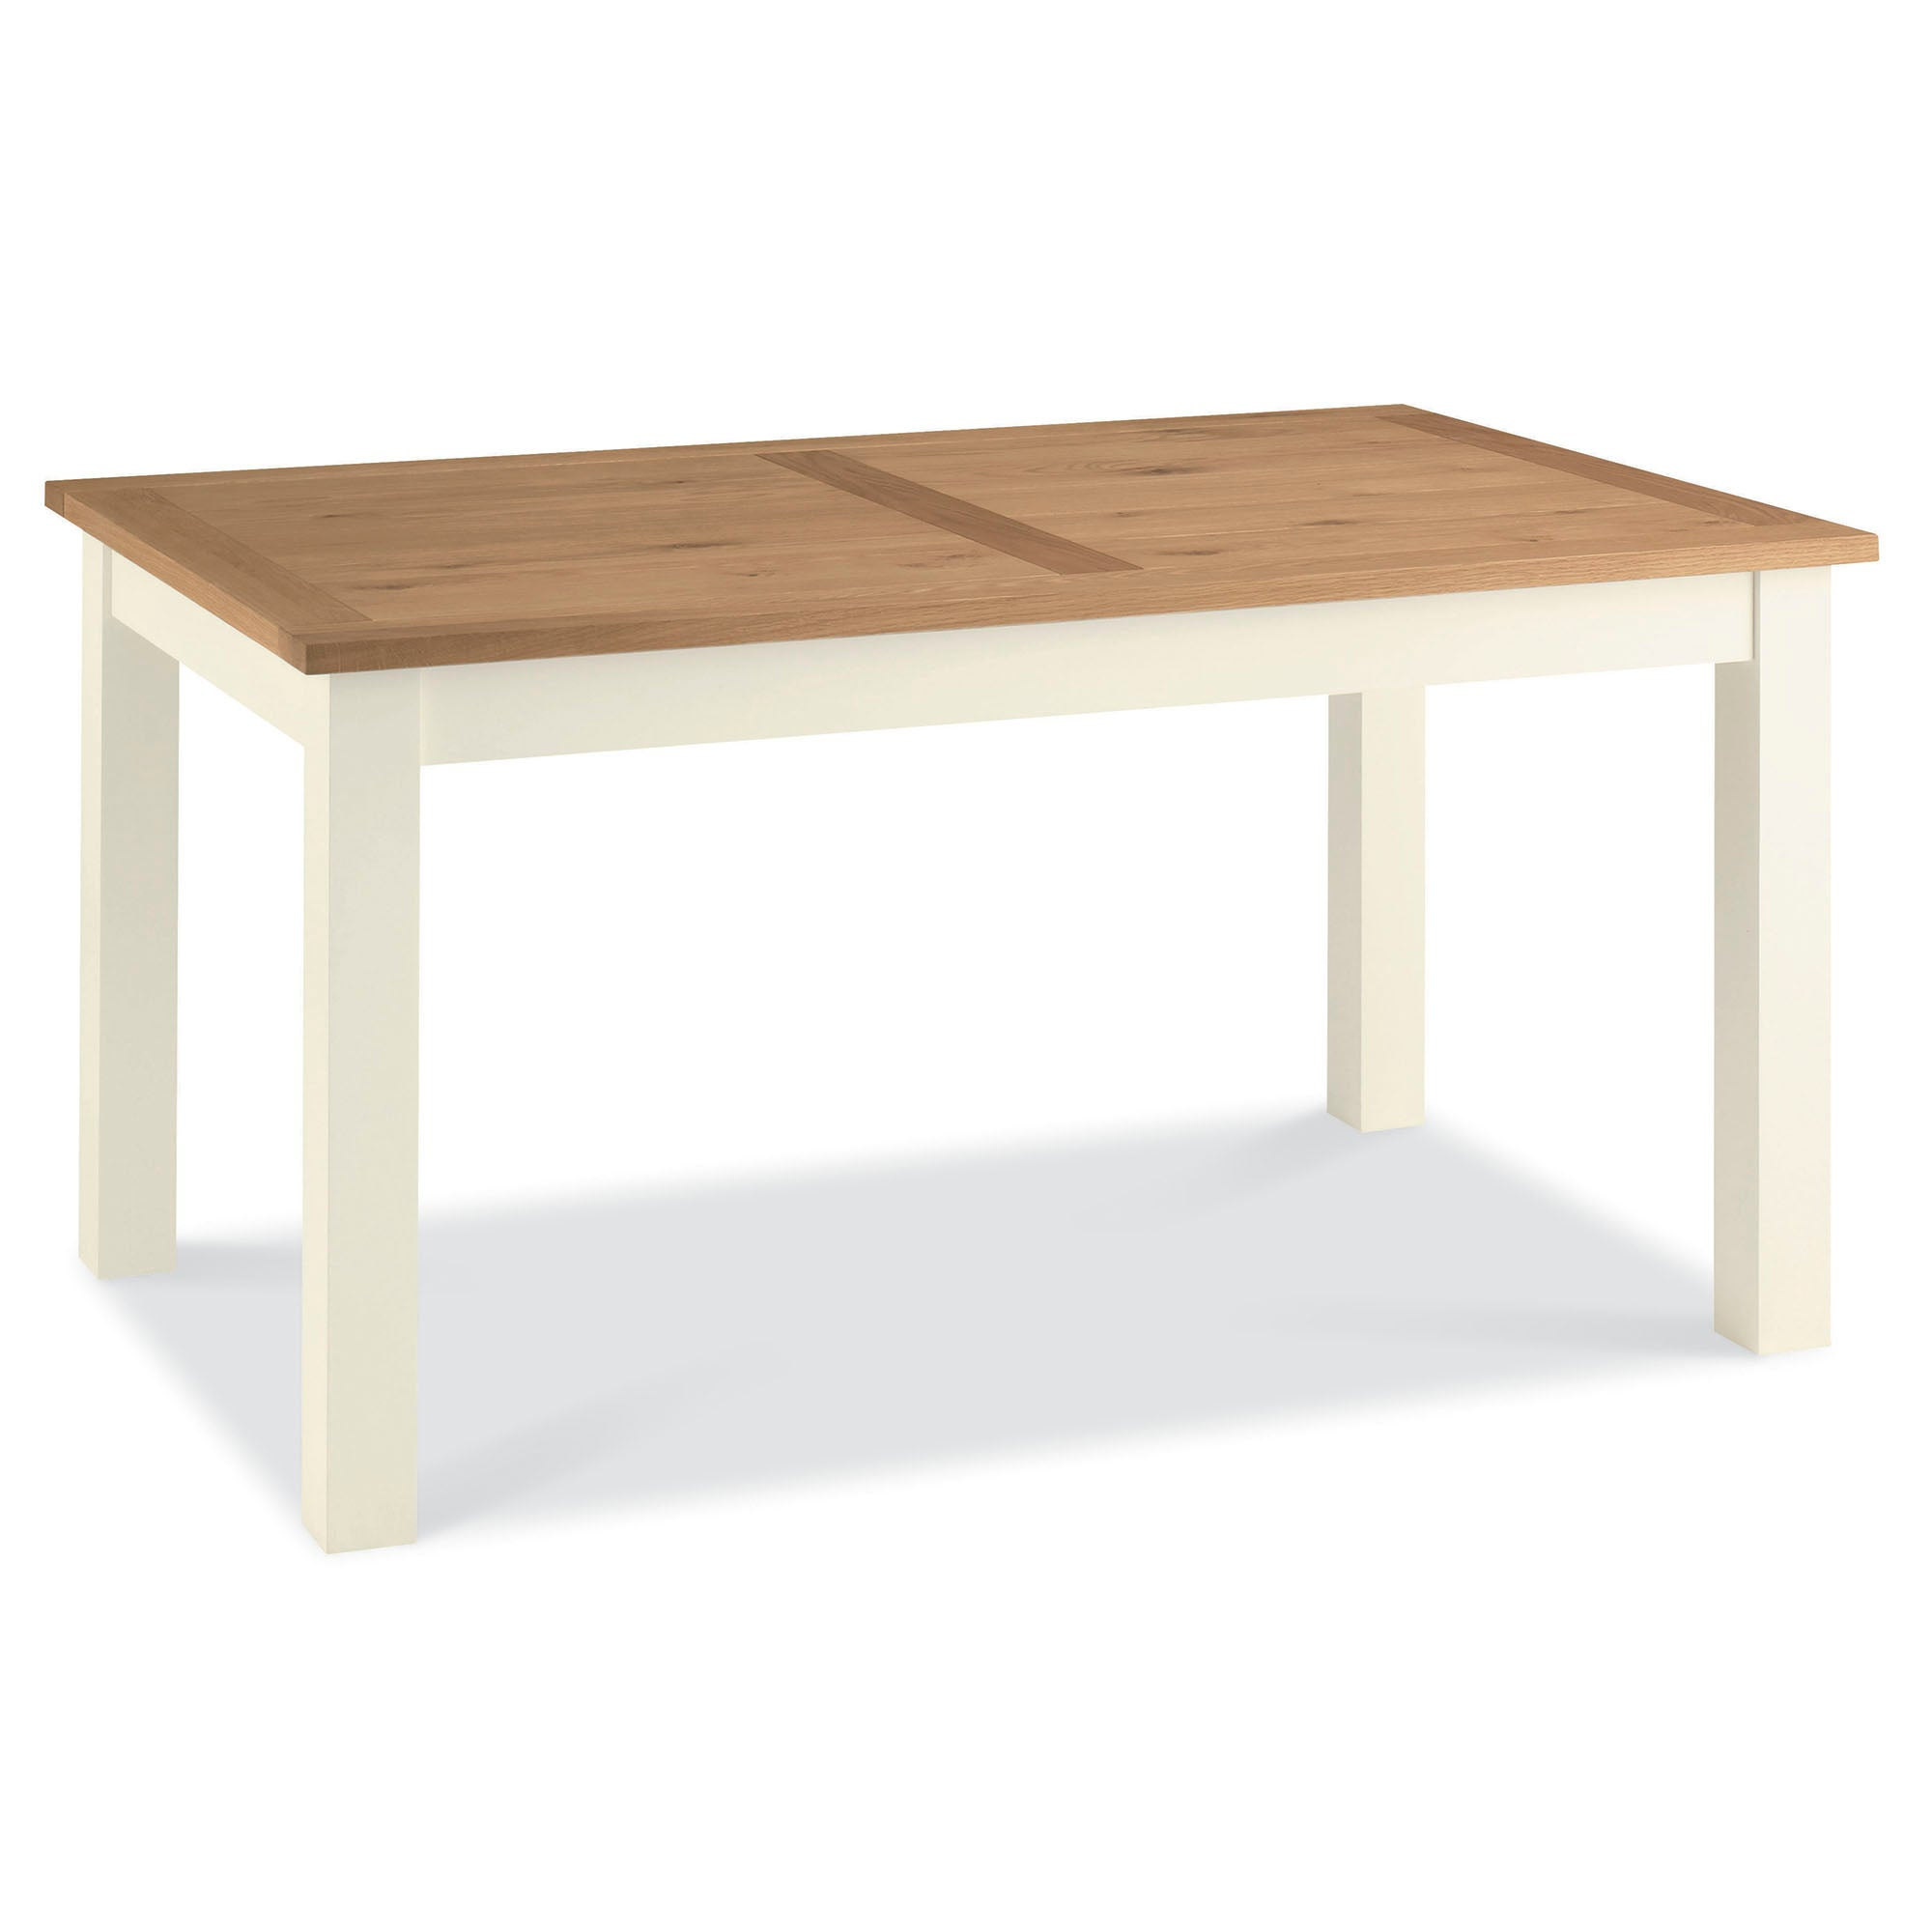 Penzance Oak Two Tone 6 Seater Dining Table